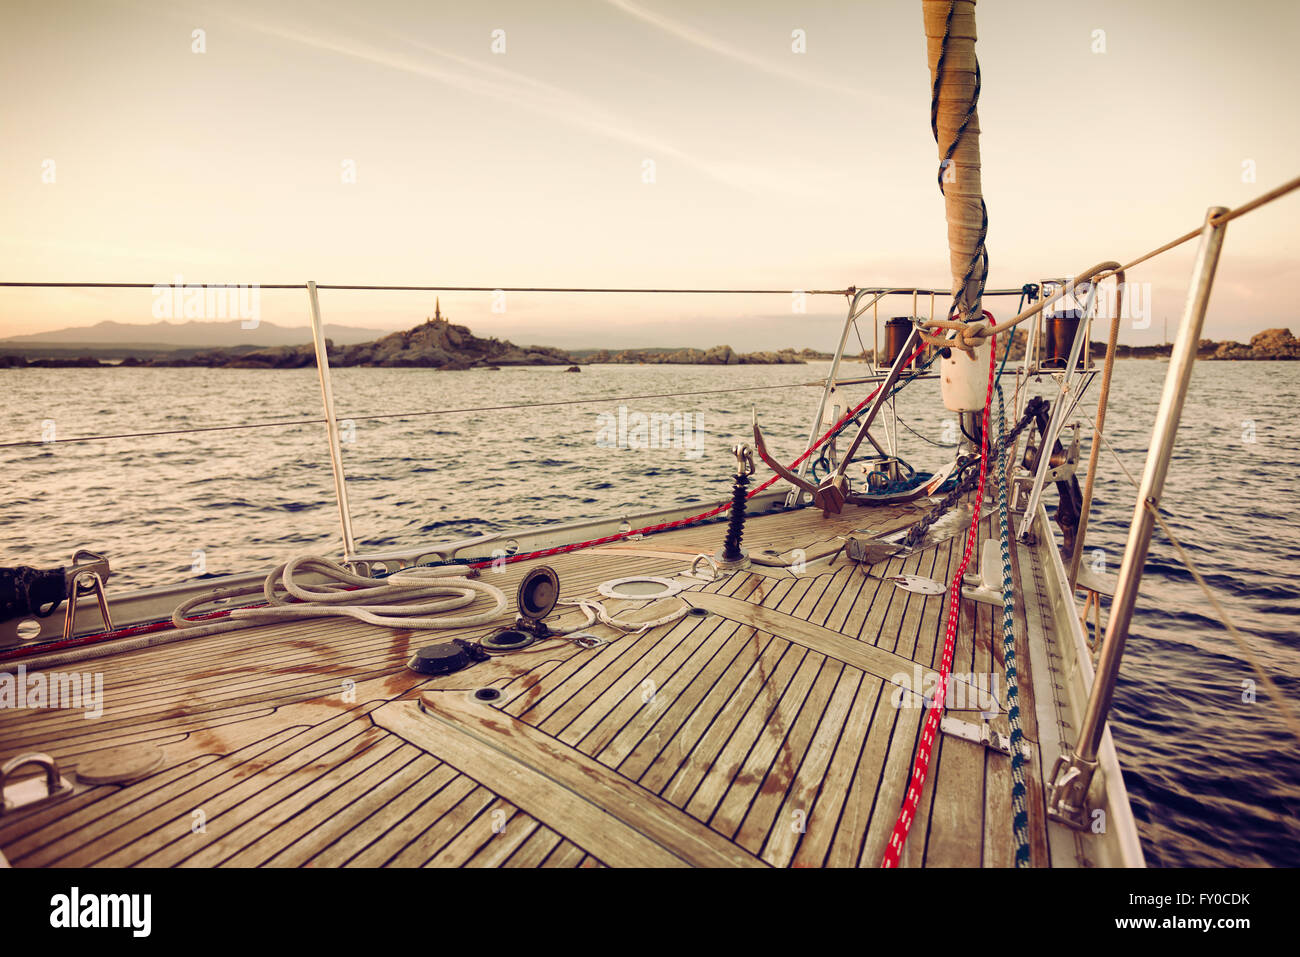 sail boat at sunset - Stock Image